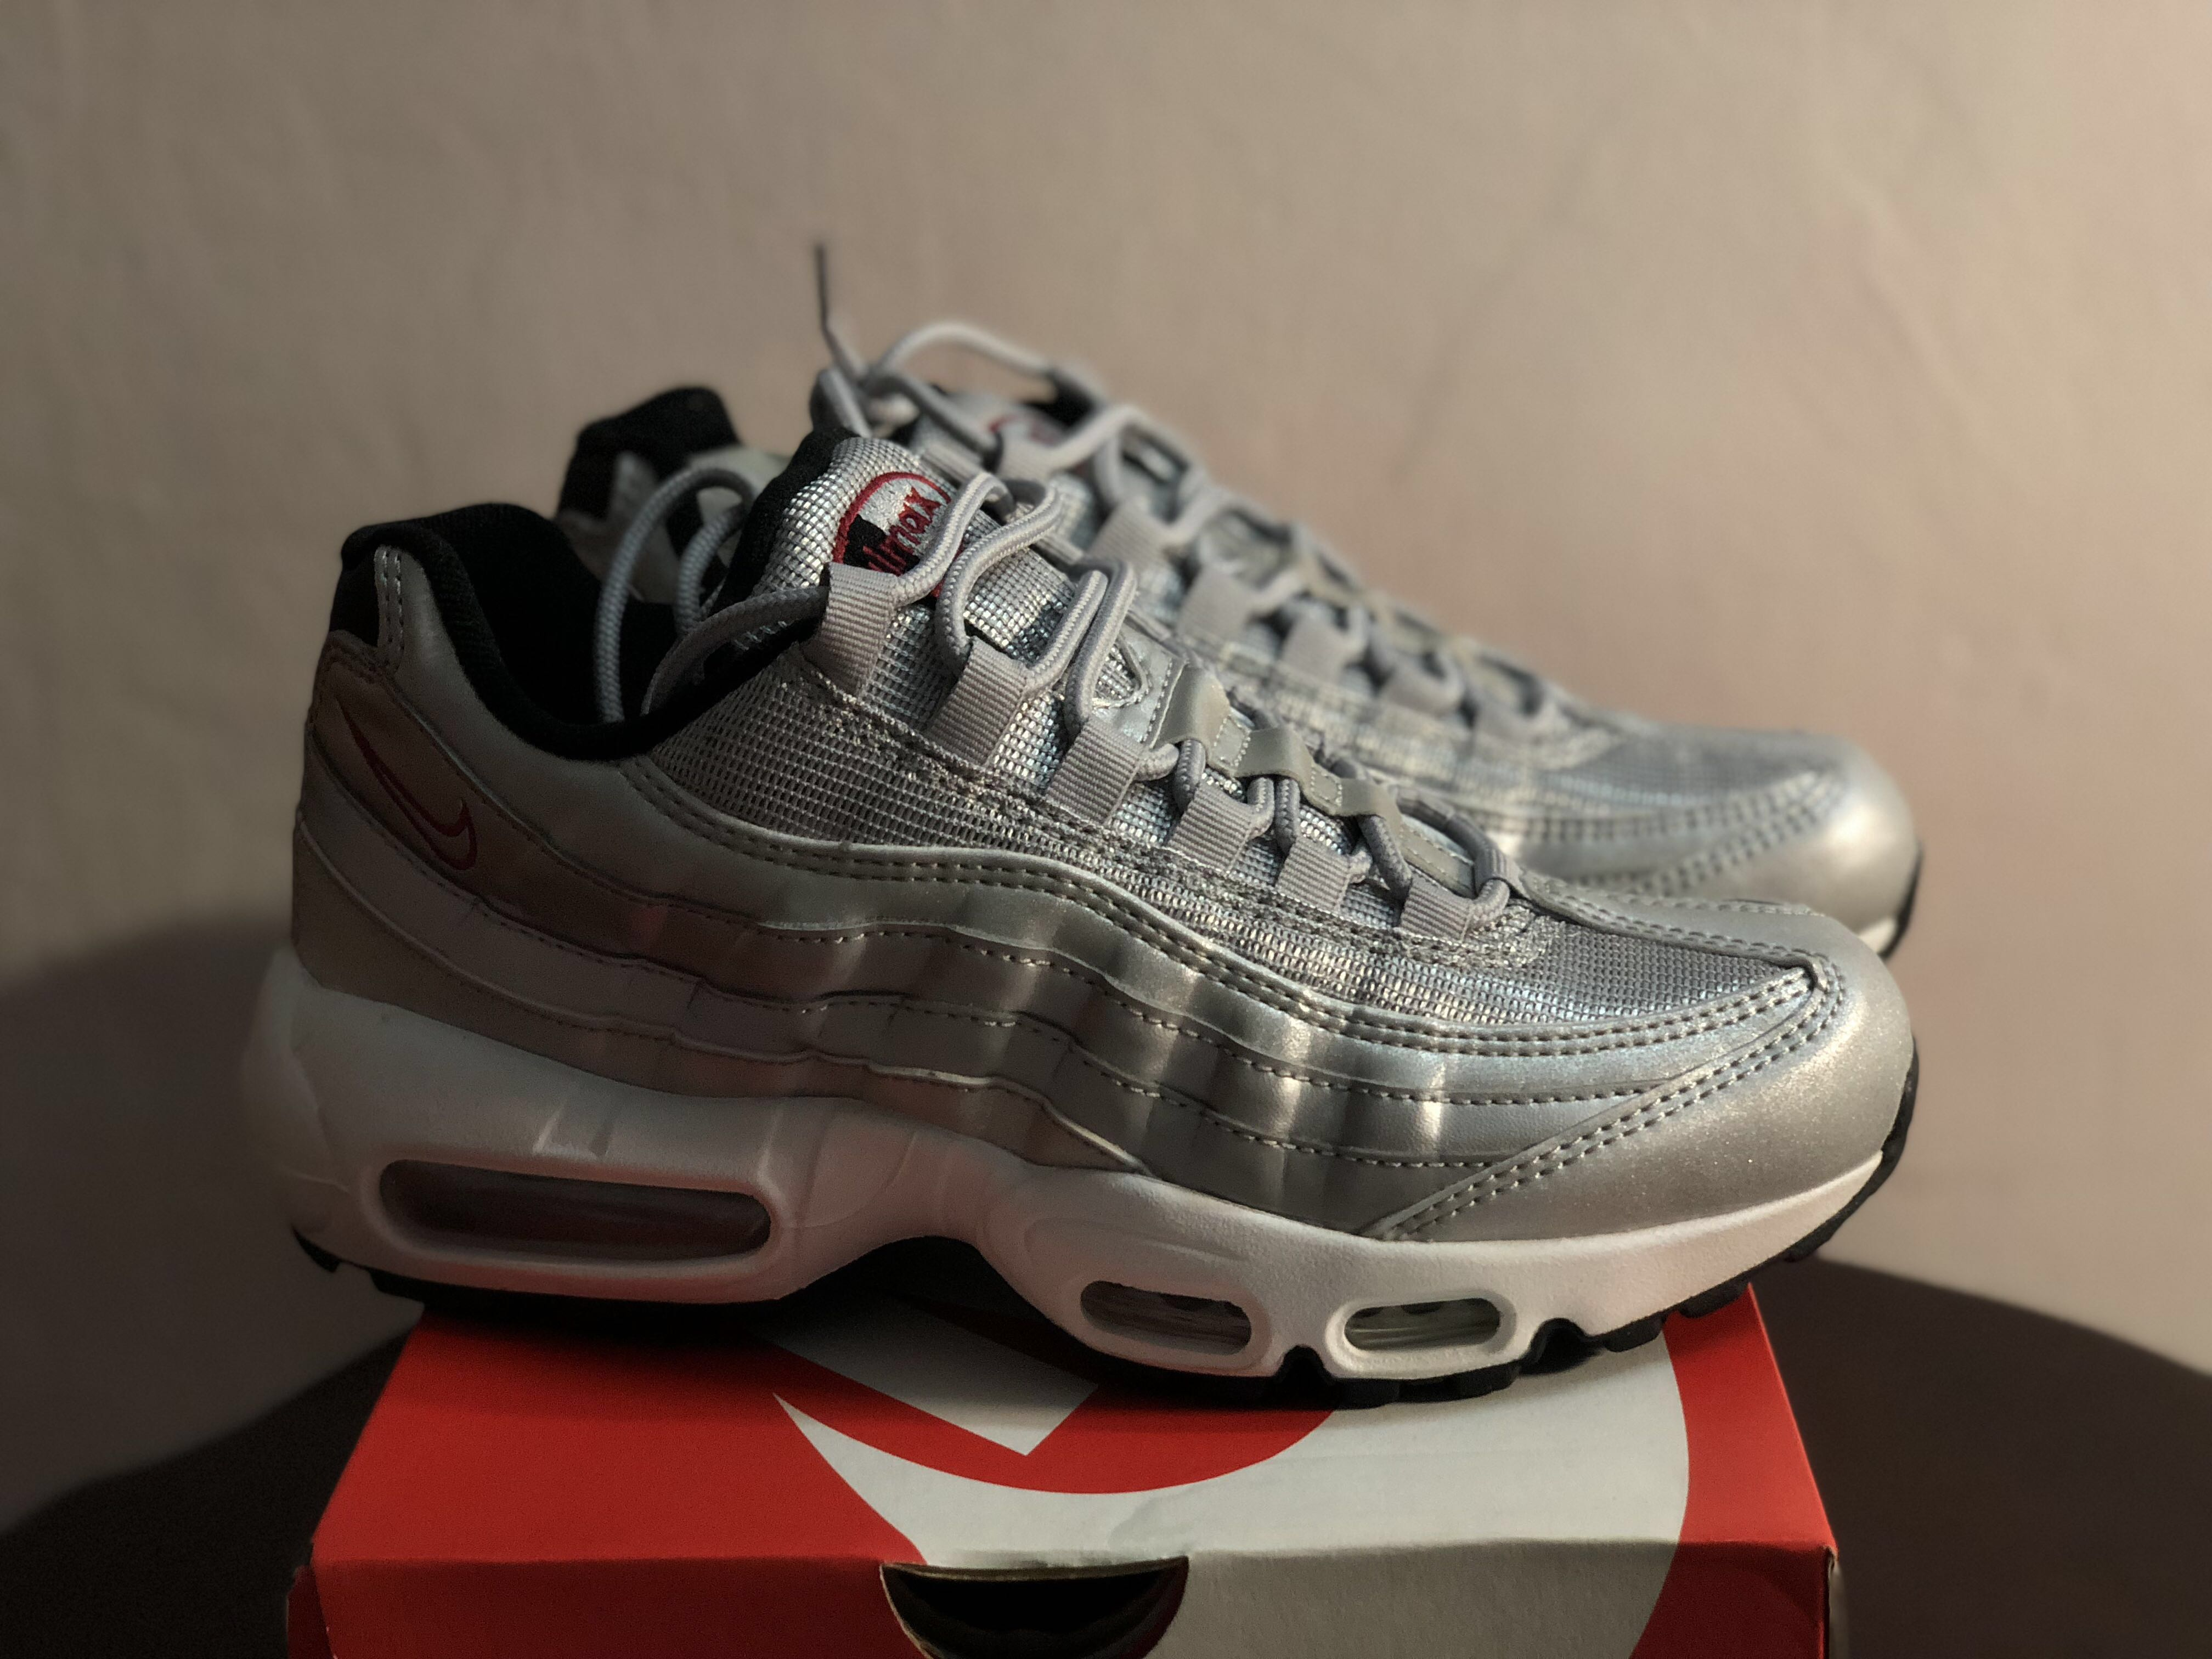 c215fd083c Womens Nike Air Max 95 Silver Bullet, Women's Fashion, Shoes, Sneakers on  Carousell